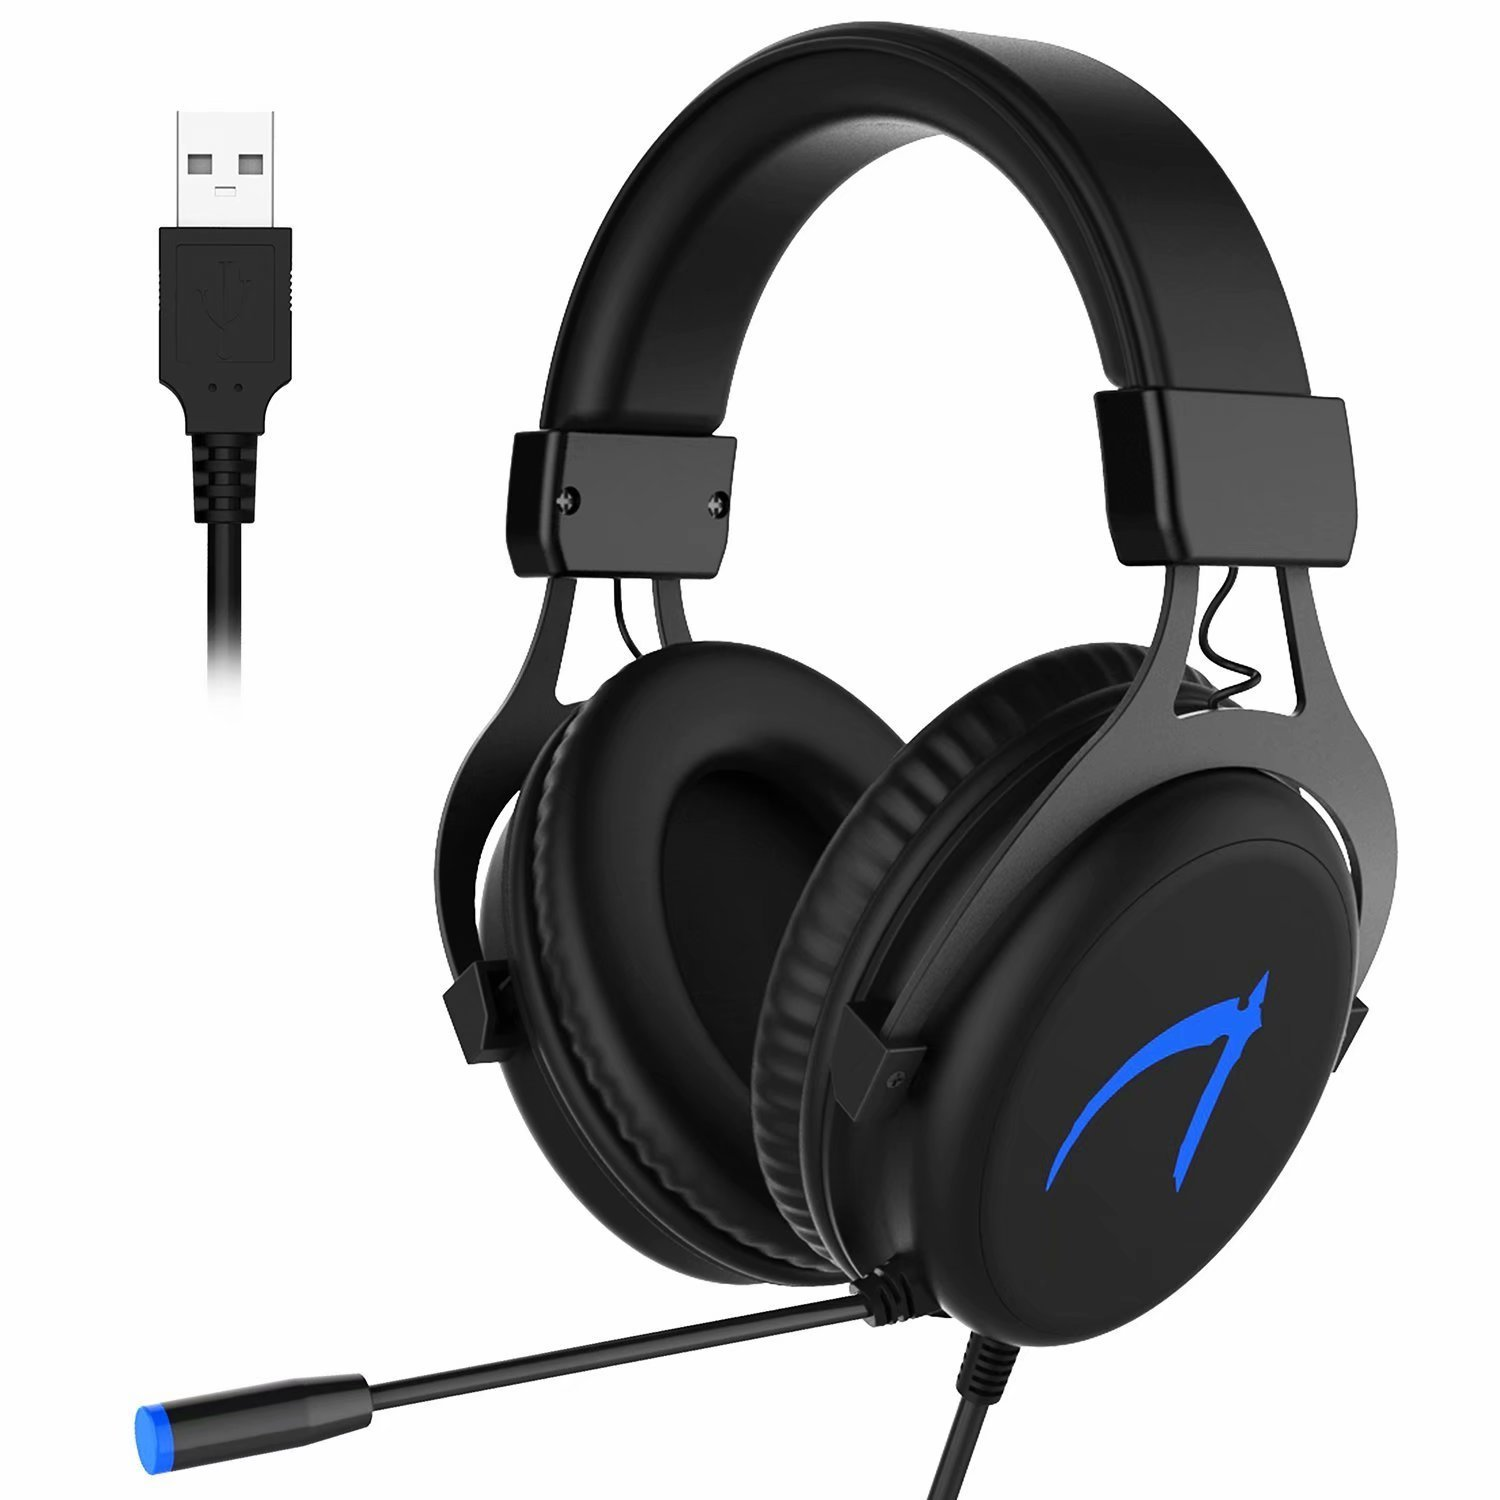 USB Headset KSHOP Profession 7.1 Gaming Headset Surround Stereo Sound USB With Led Microphones Computer Music Headphones For PC- Black(With 7.1 CD driver)